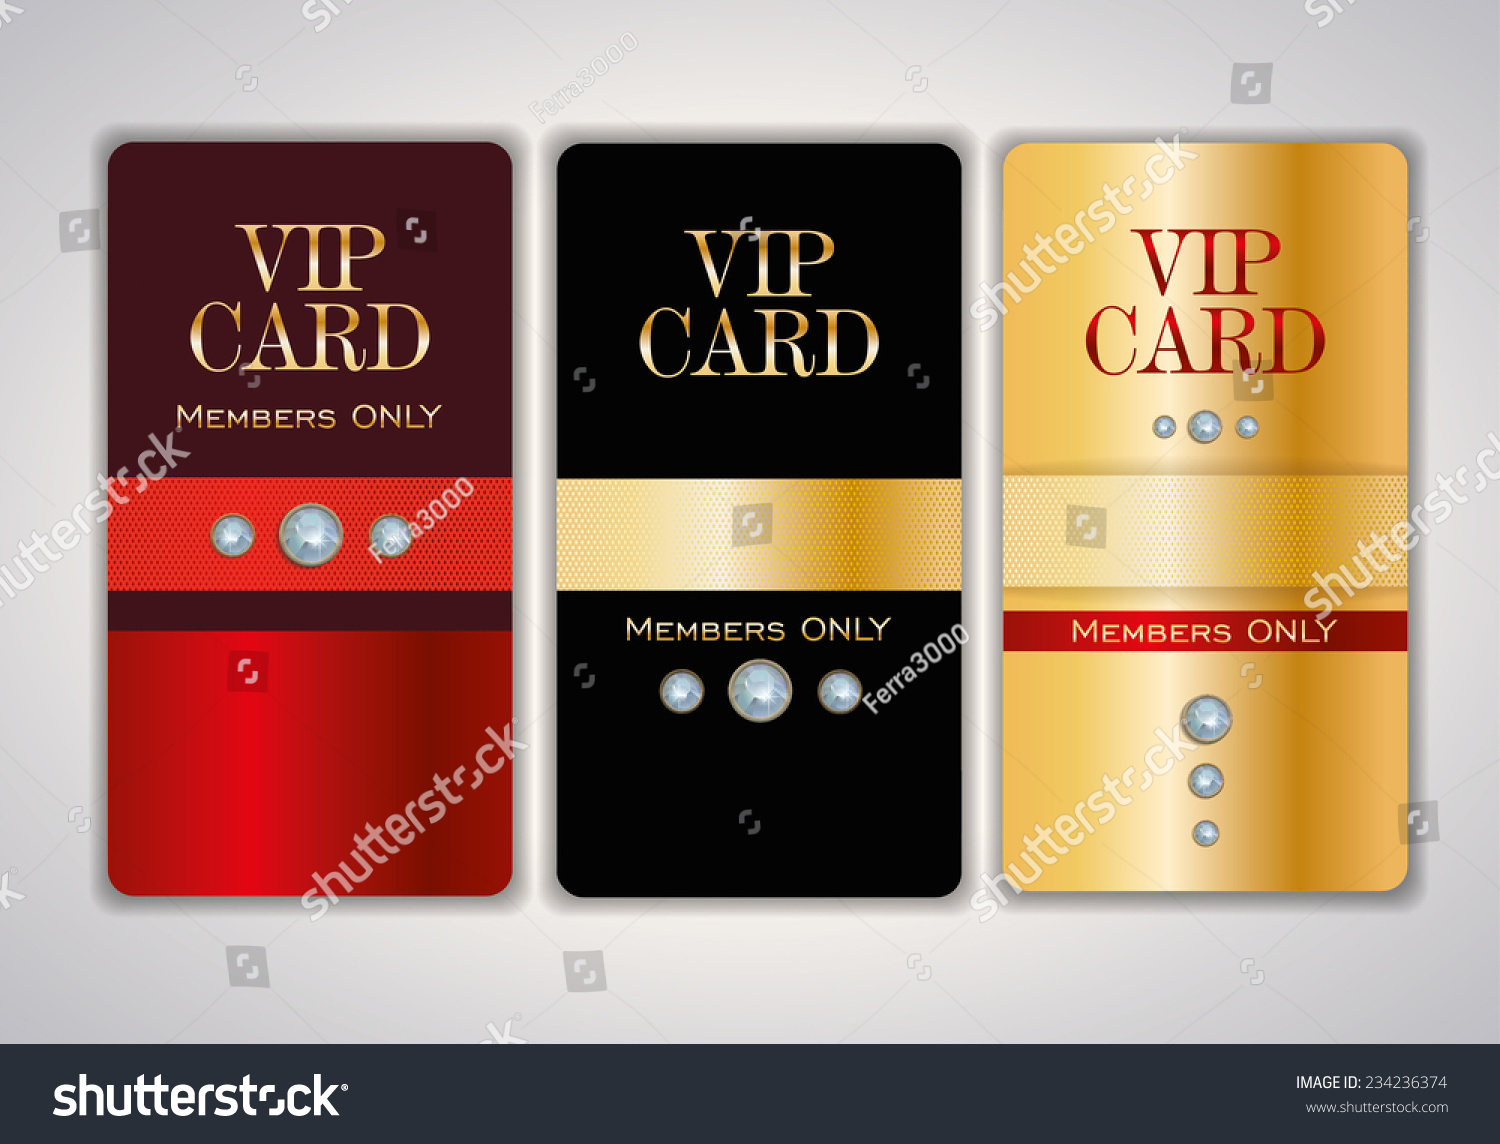 Vip Club Card Design Templates Crystals Vector 234236374 – Club Card Design